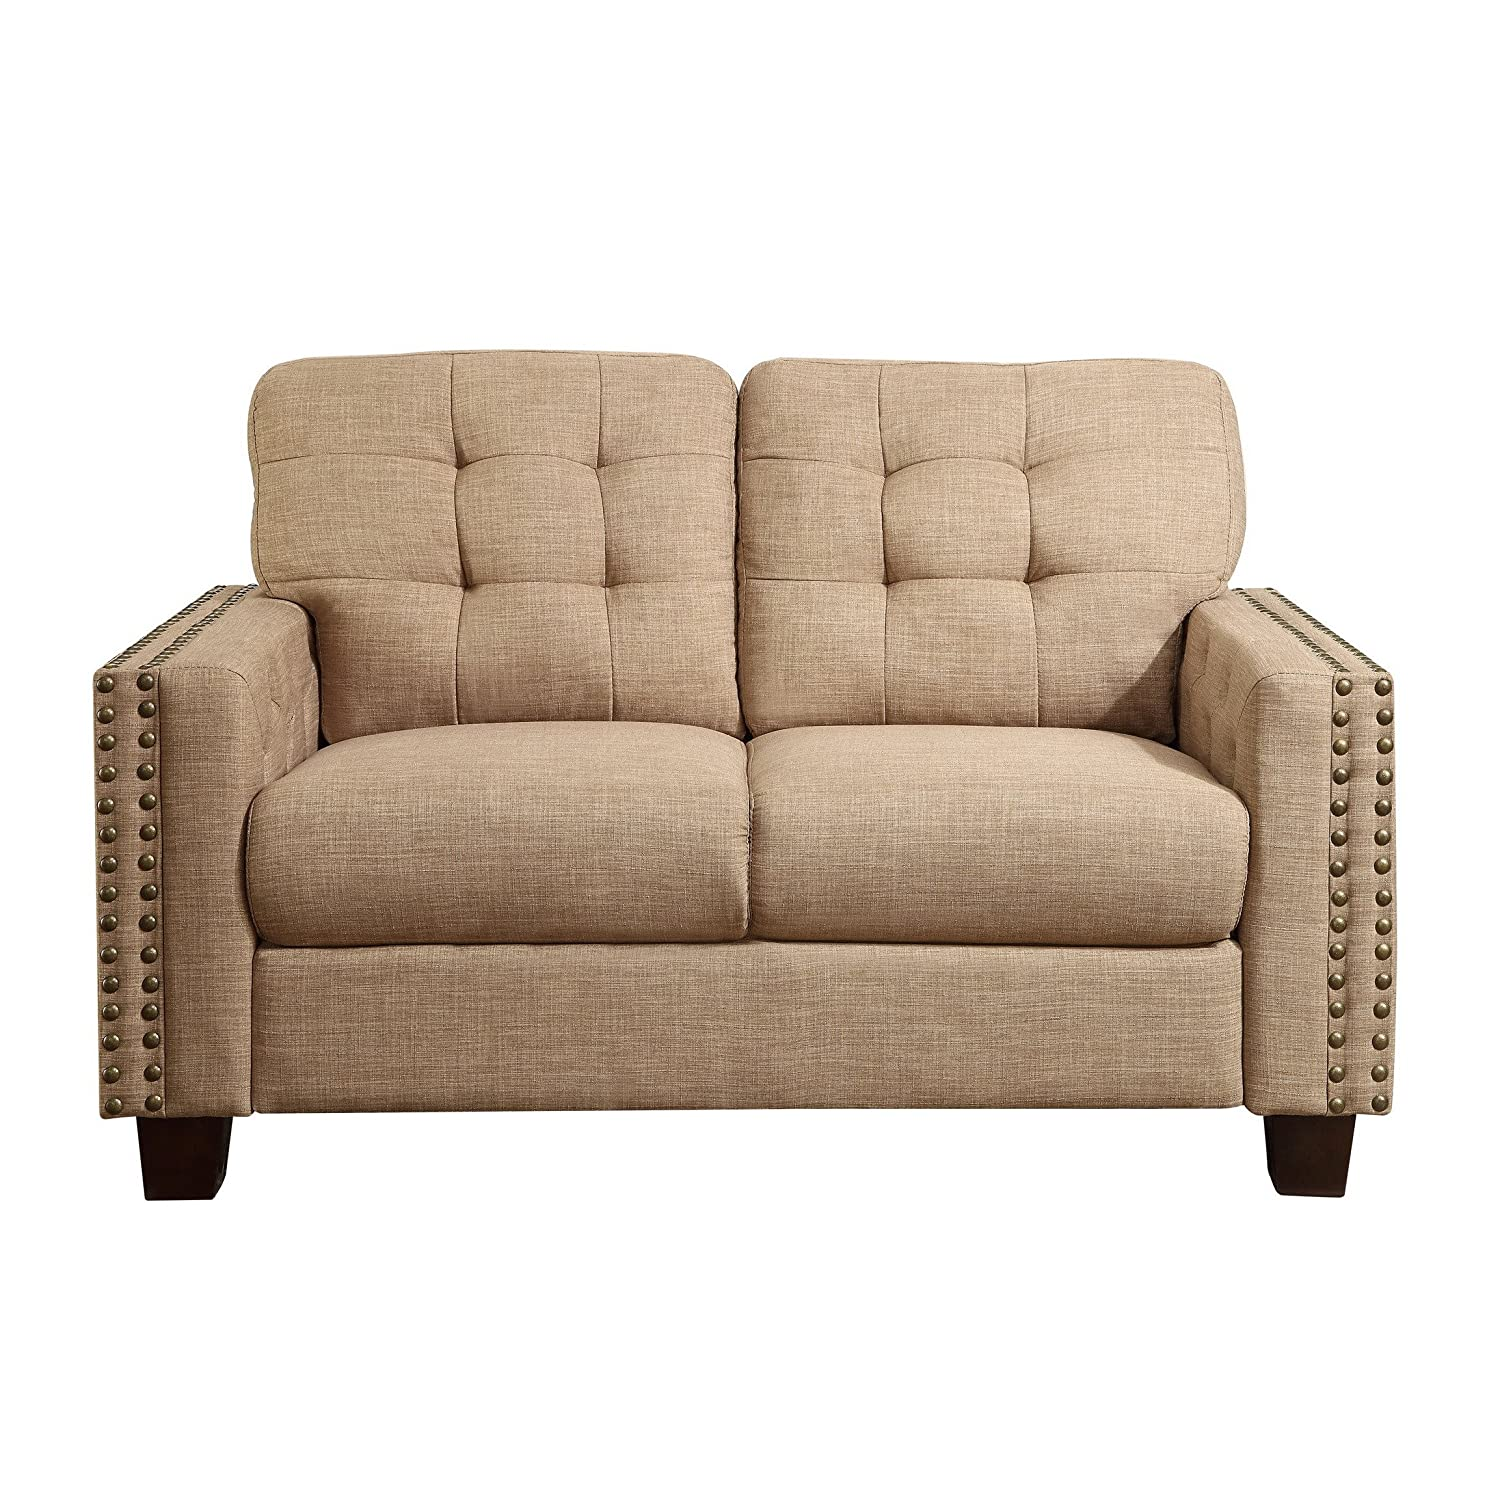 Amazon Rosevera Delicia Tufted Loveseat Wheat Home & Kitchen